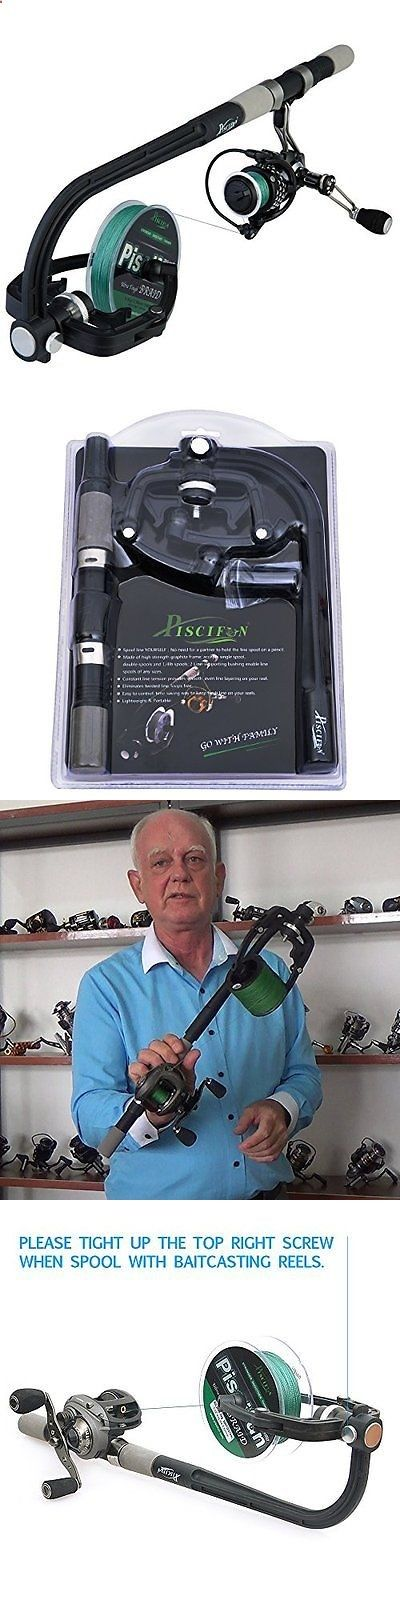 Line Tools and Accessories 179971: Professional Portable Spooling Station Fishing Reel Line Spooler And Winder -> BUY IT NOW ONLY: $46.23 on eBay!